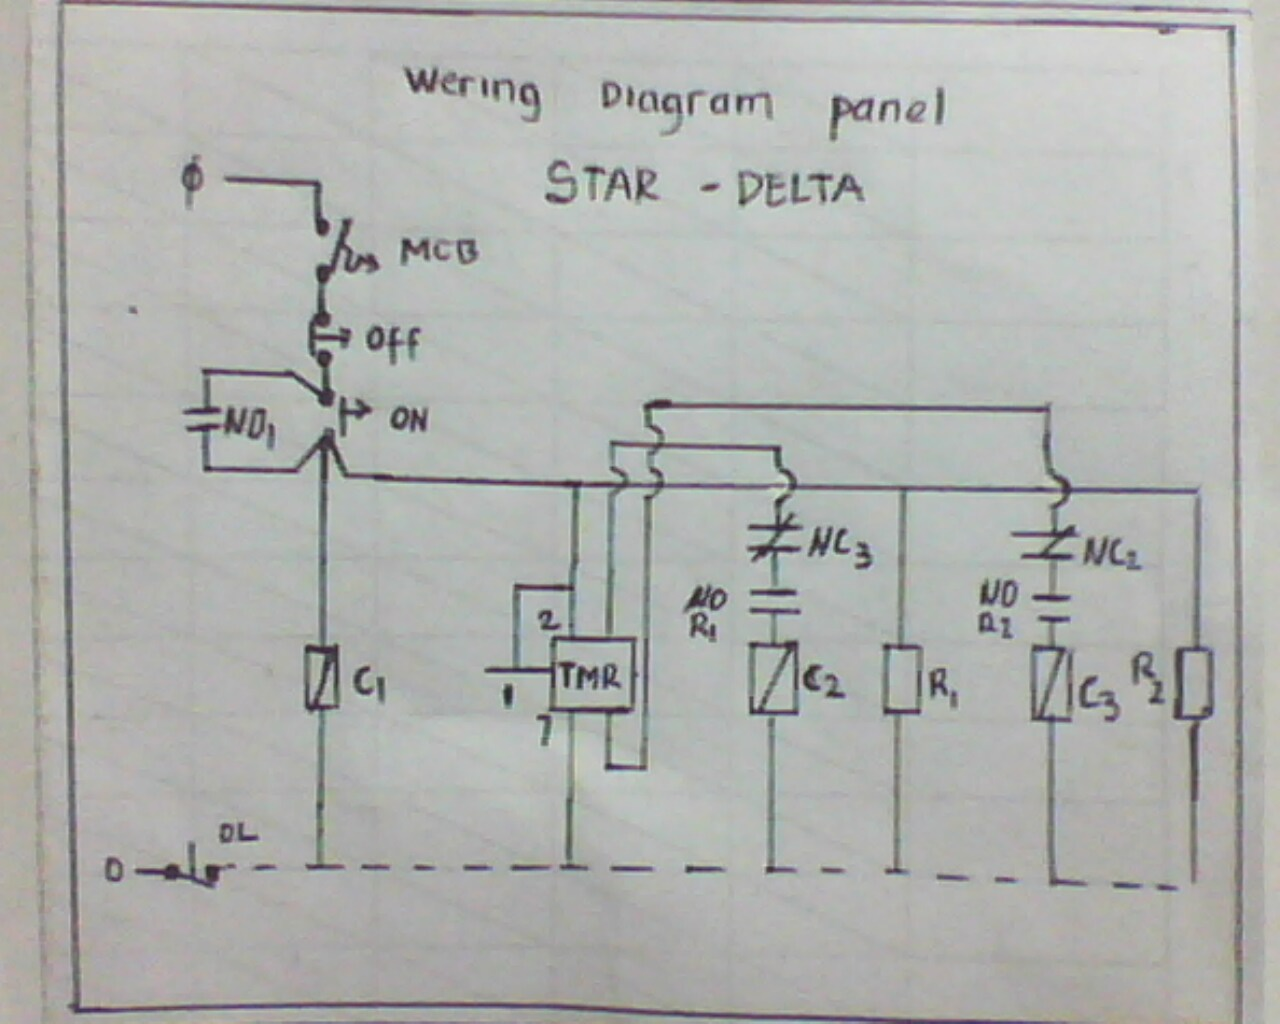 Star Delta Wiring Diagram Motor Double Light Switch Australia Installation Of Electrical Panels Instalasi Panel Listrik